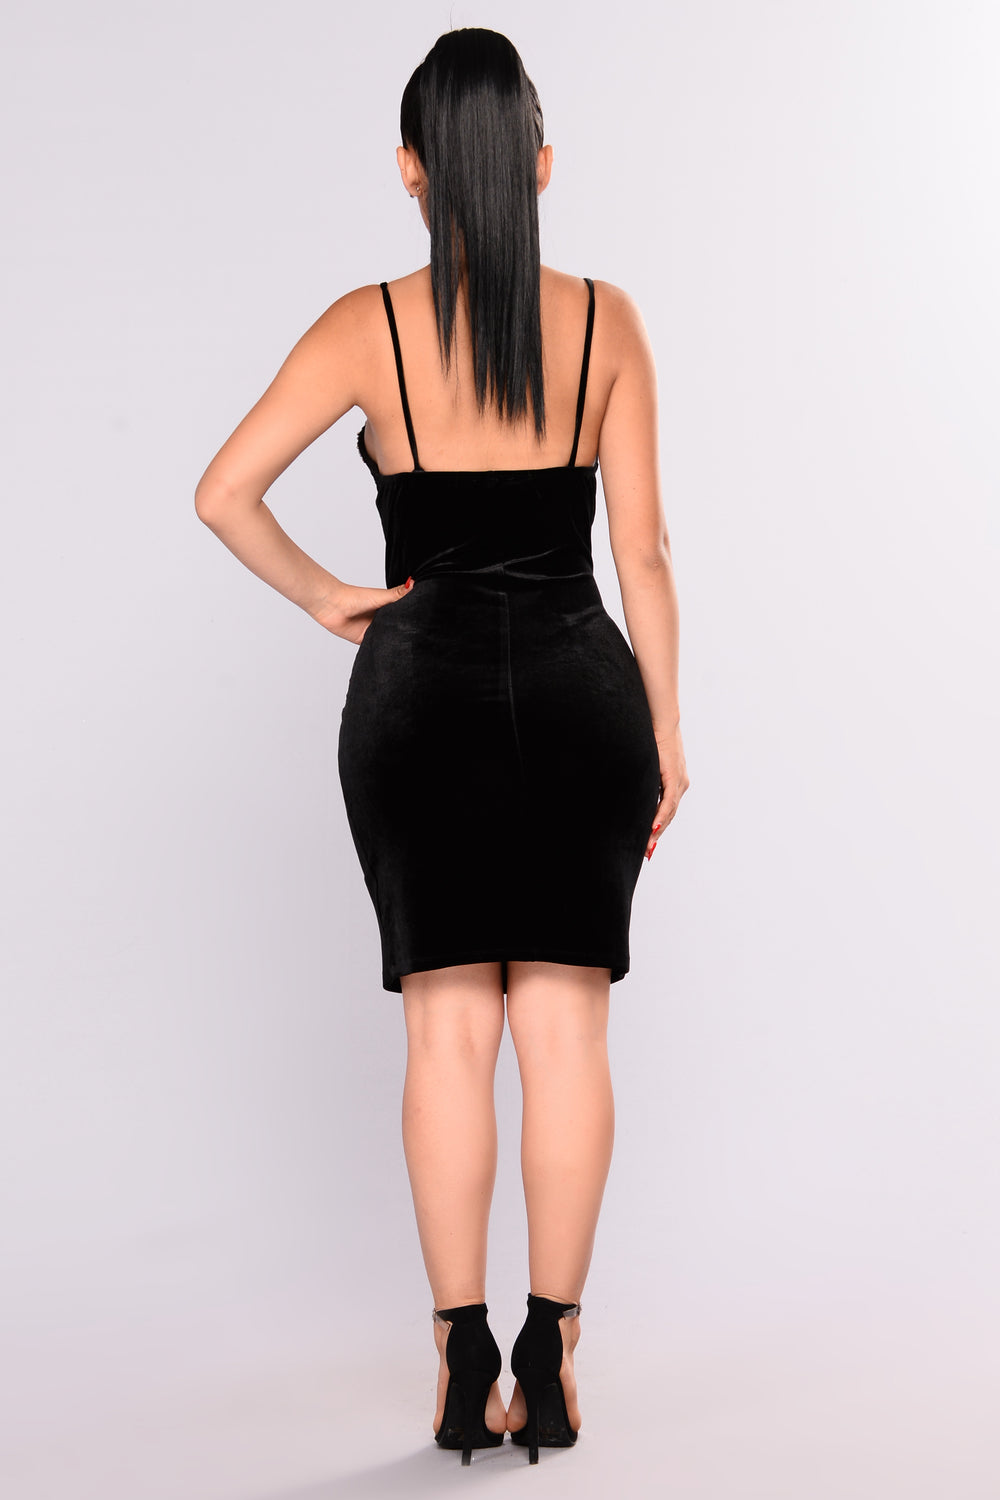 Gem Velvet Dress - Black